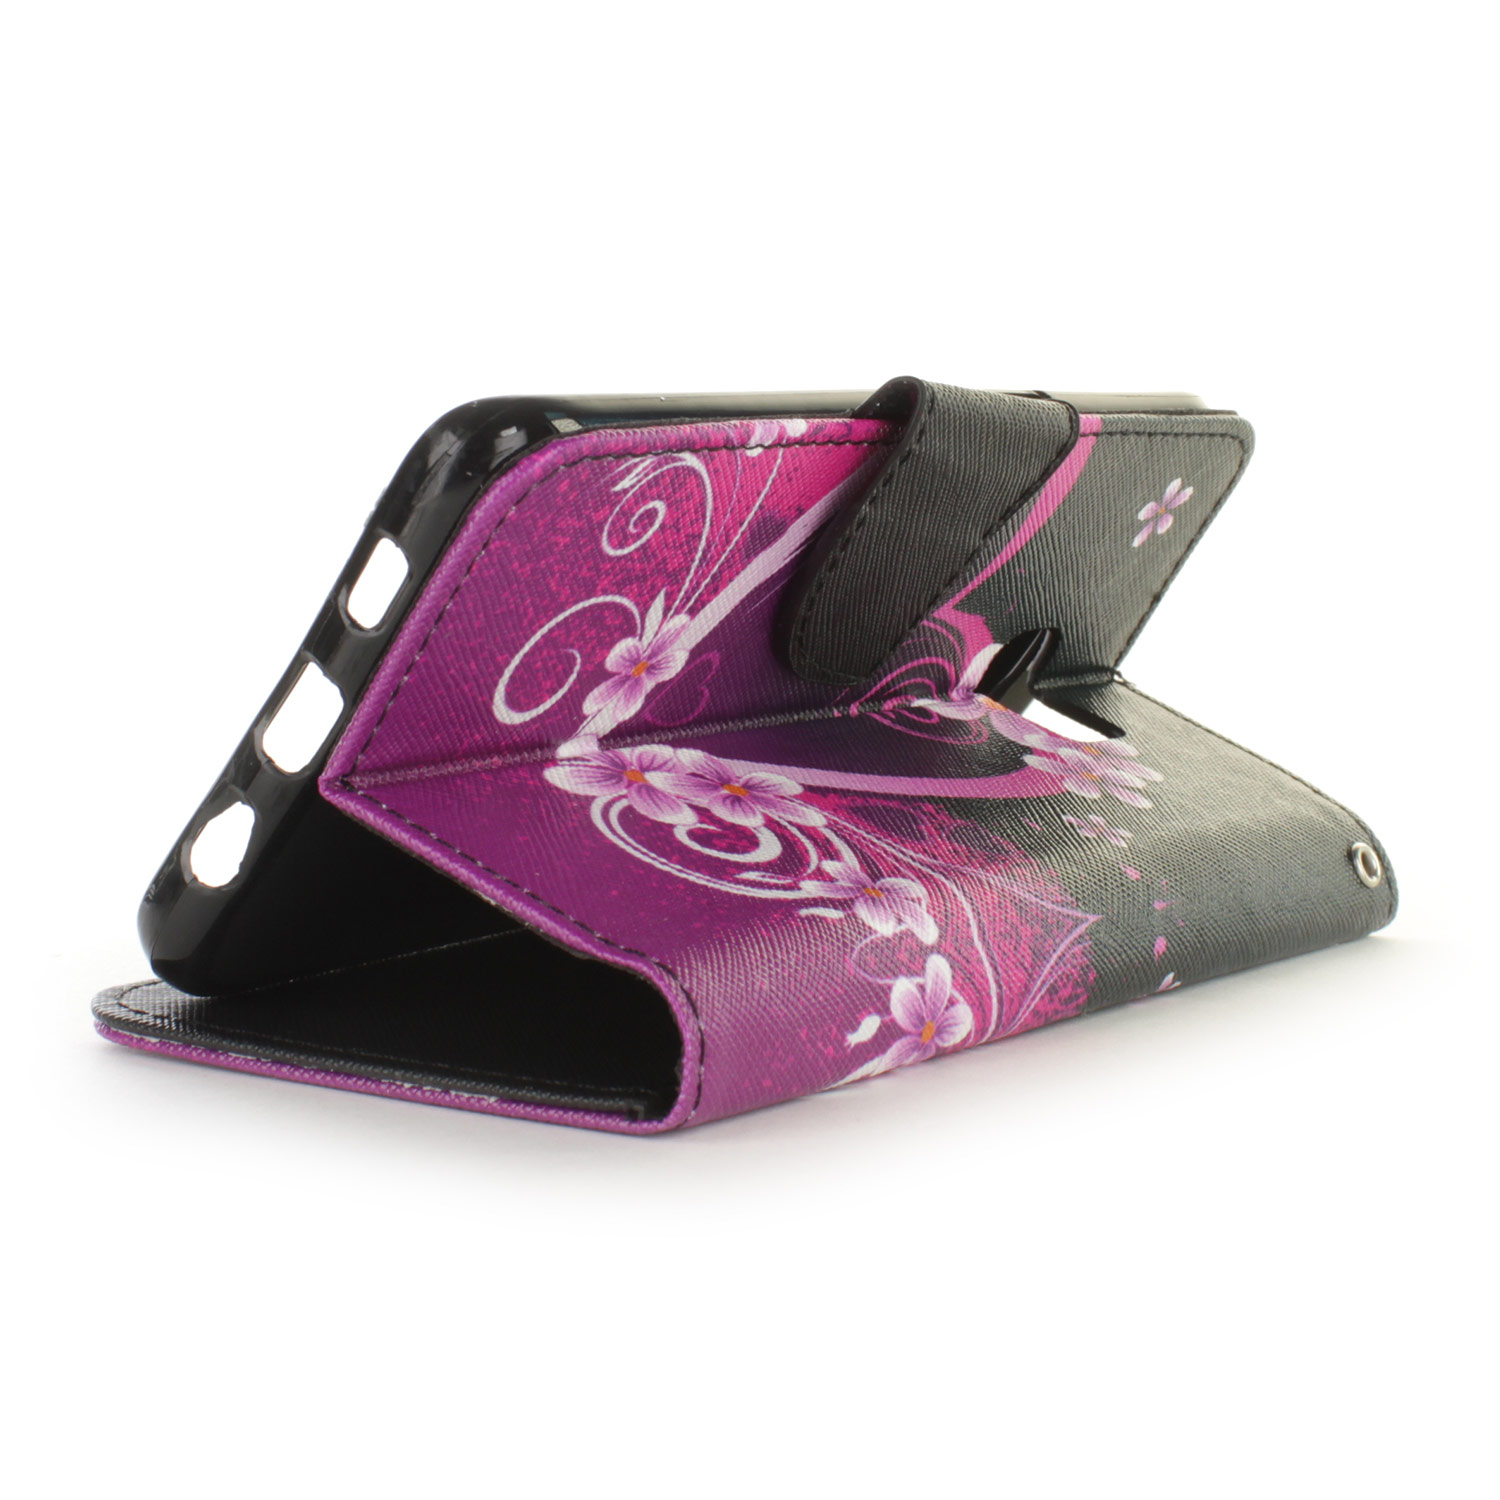 a26c274d97 Purple Heart Design Wallet Pouch Cover Case For Samsung Galaxy S6 ...